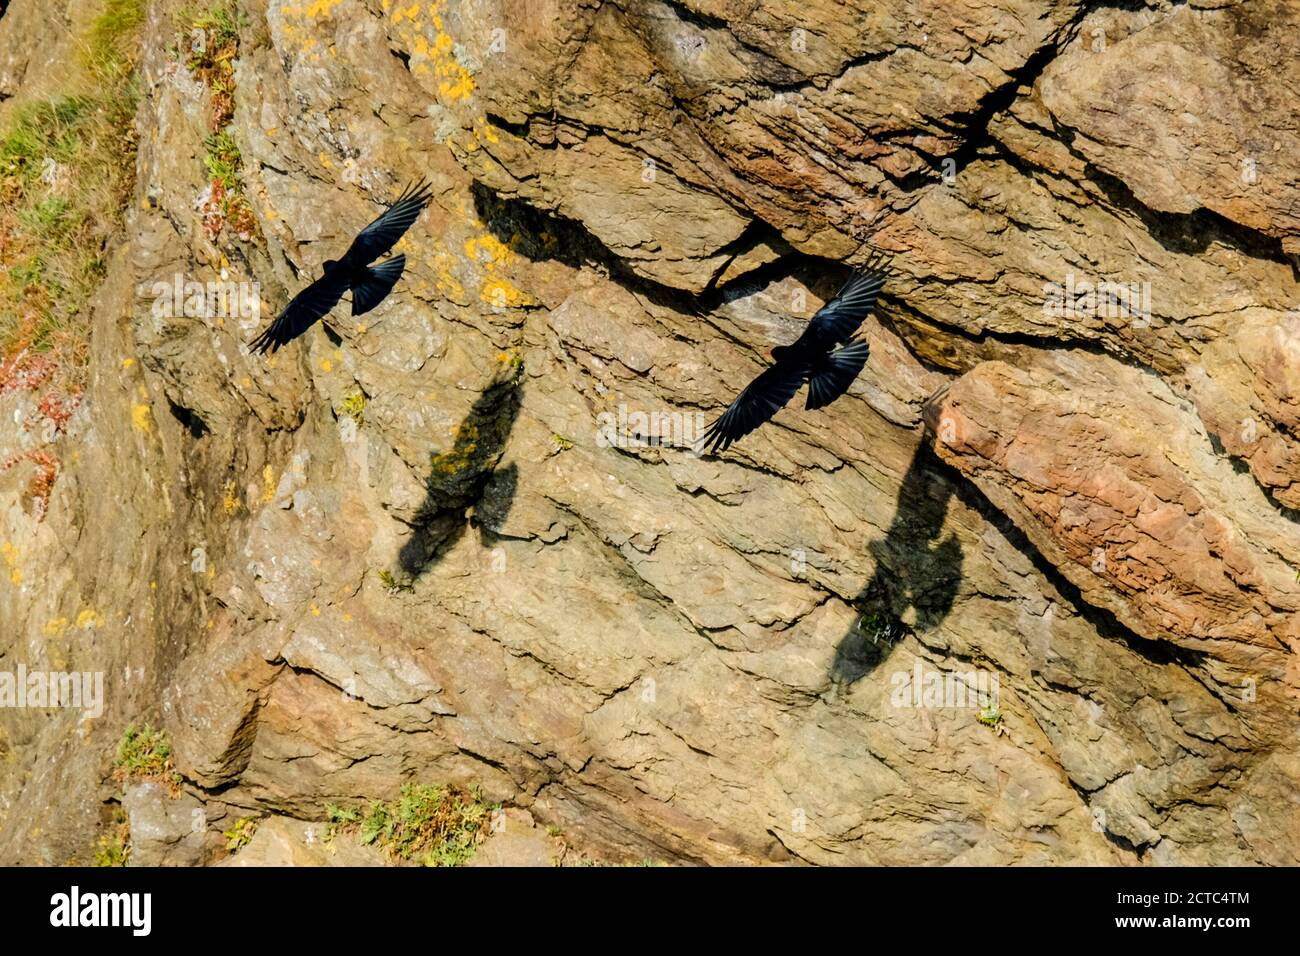 a-pair-of-red-billed-choughs-at-the-most-southerly-point-on-the-llizard-peninsula-cornwall-uk-latin-name-is-pyrrhocorax-pyrrhocorax-2CTC4TM.jpg